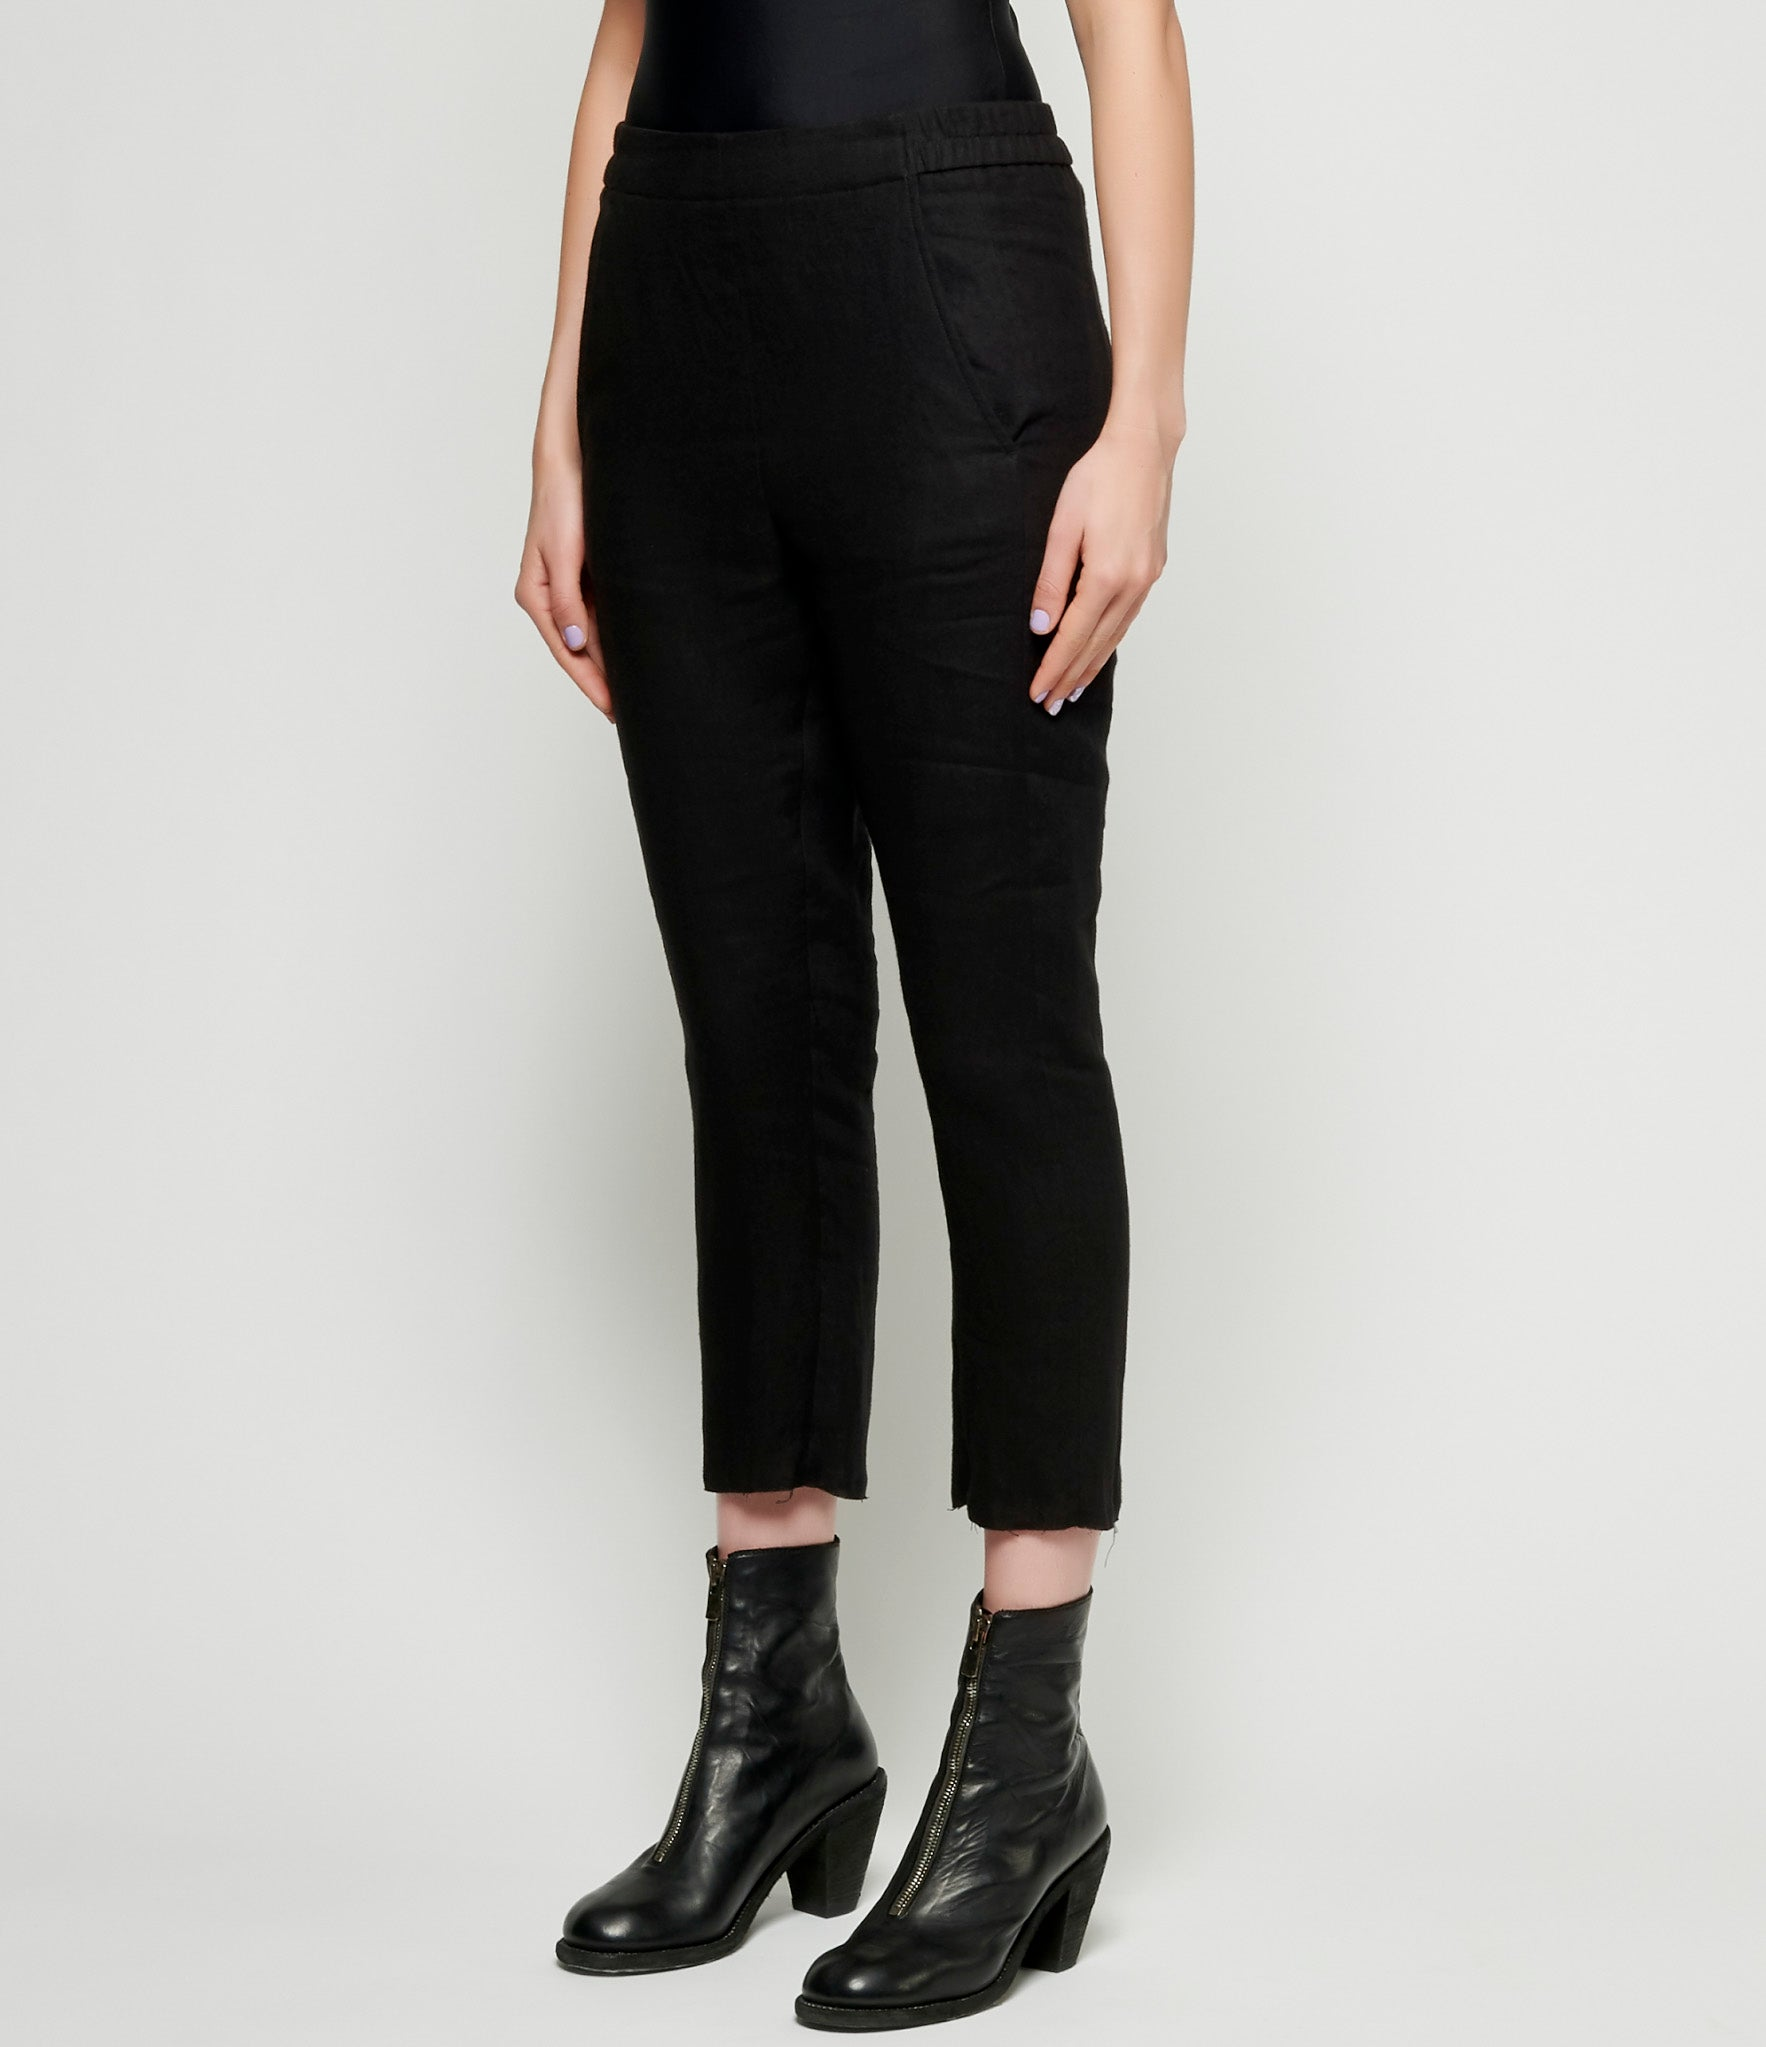 Ann Demeulemeester Light Brushed Black Trousers